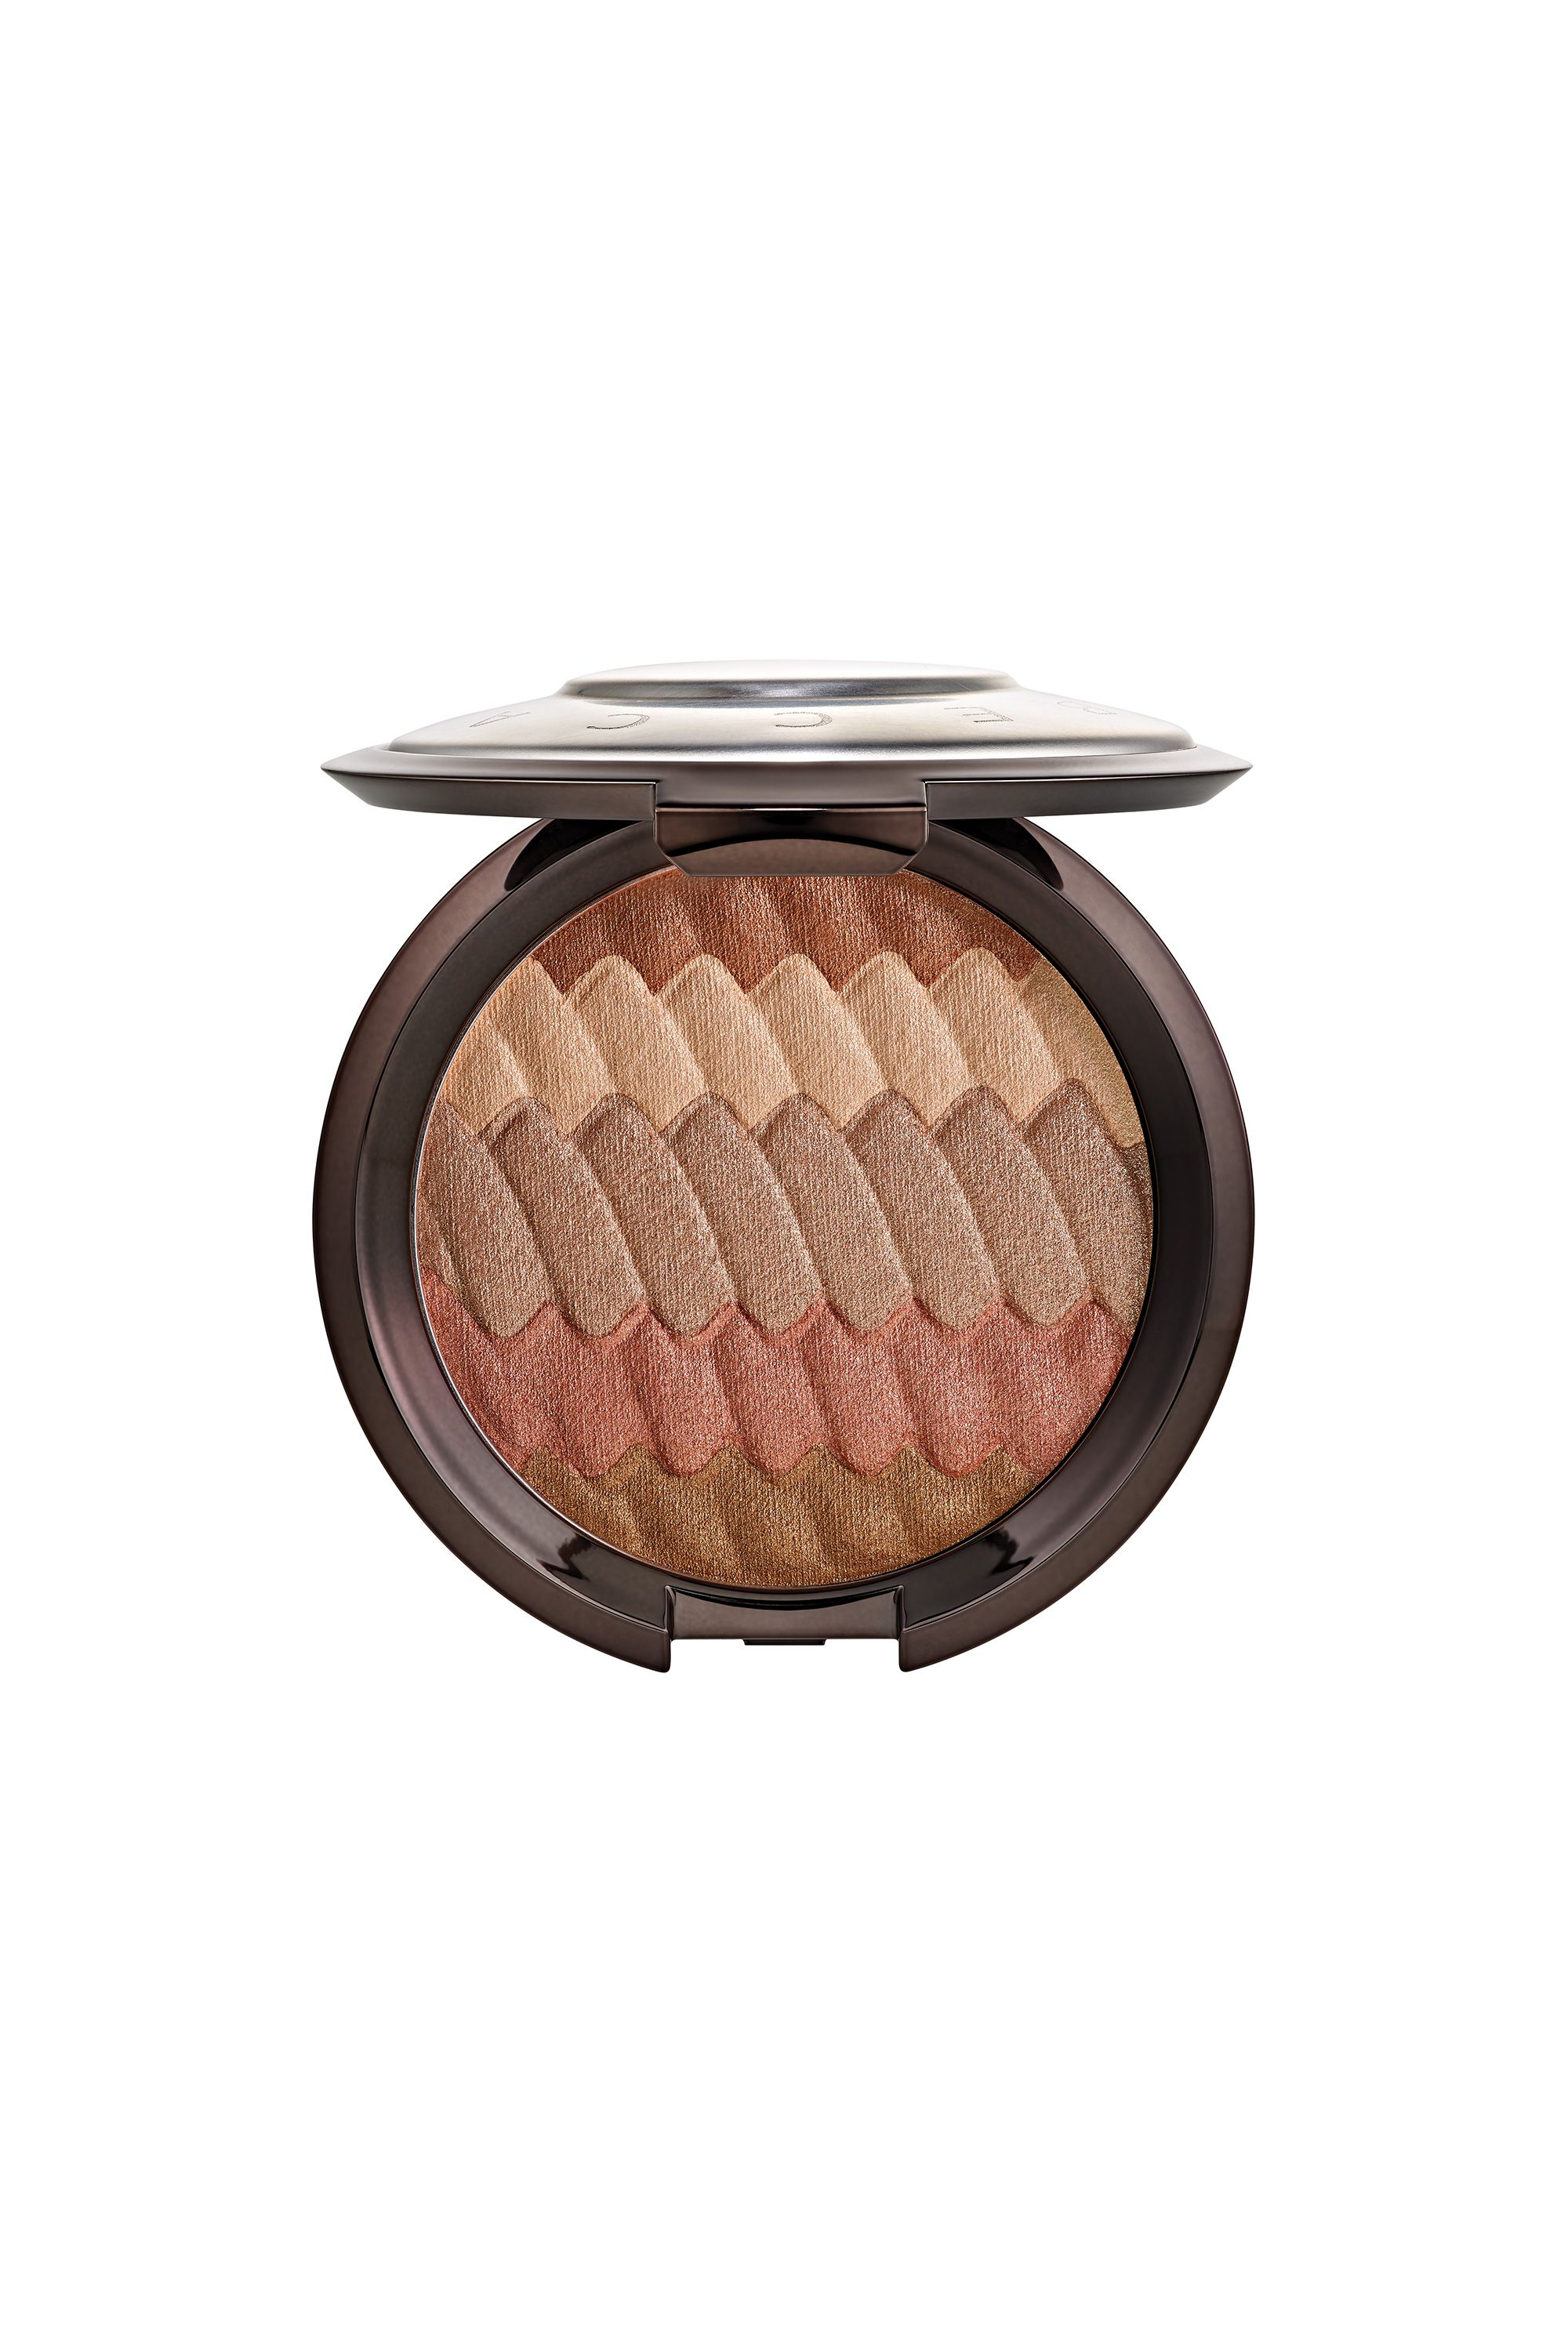 Becca Shimmering Skin Perfector Pressed Highlighter in Gradient Glow